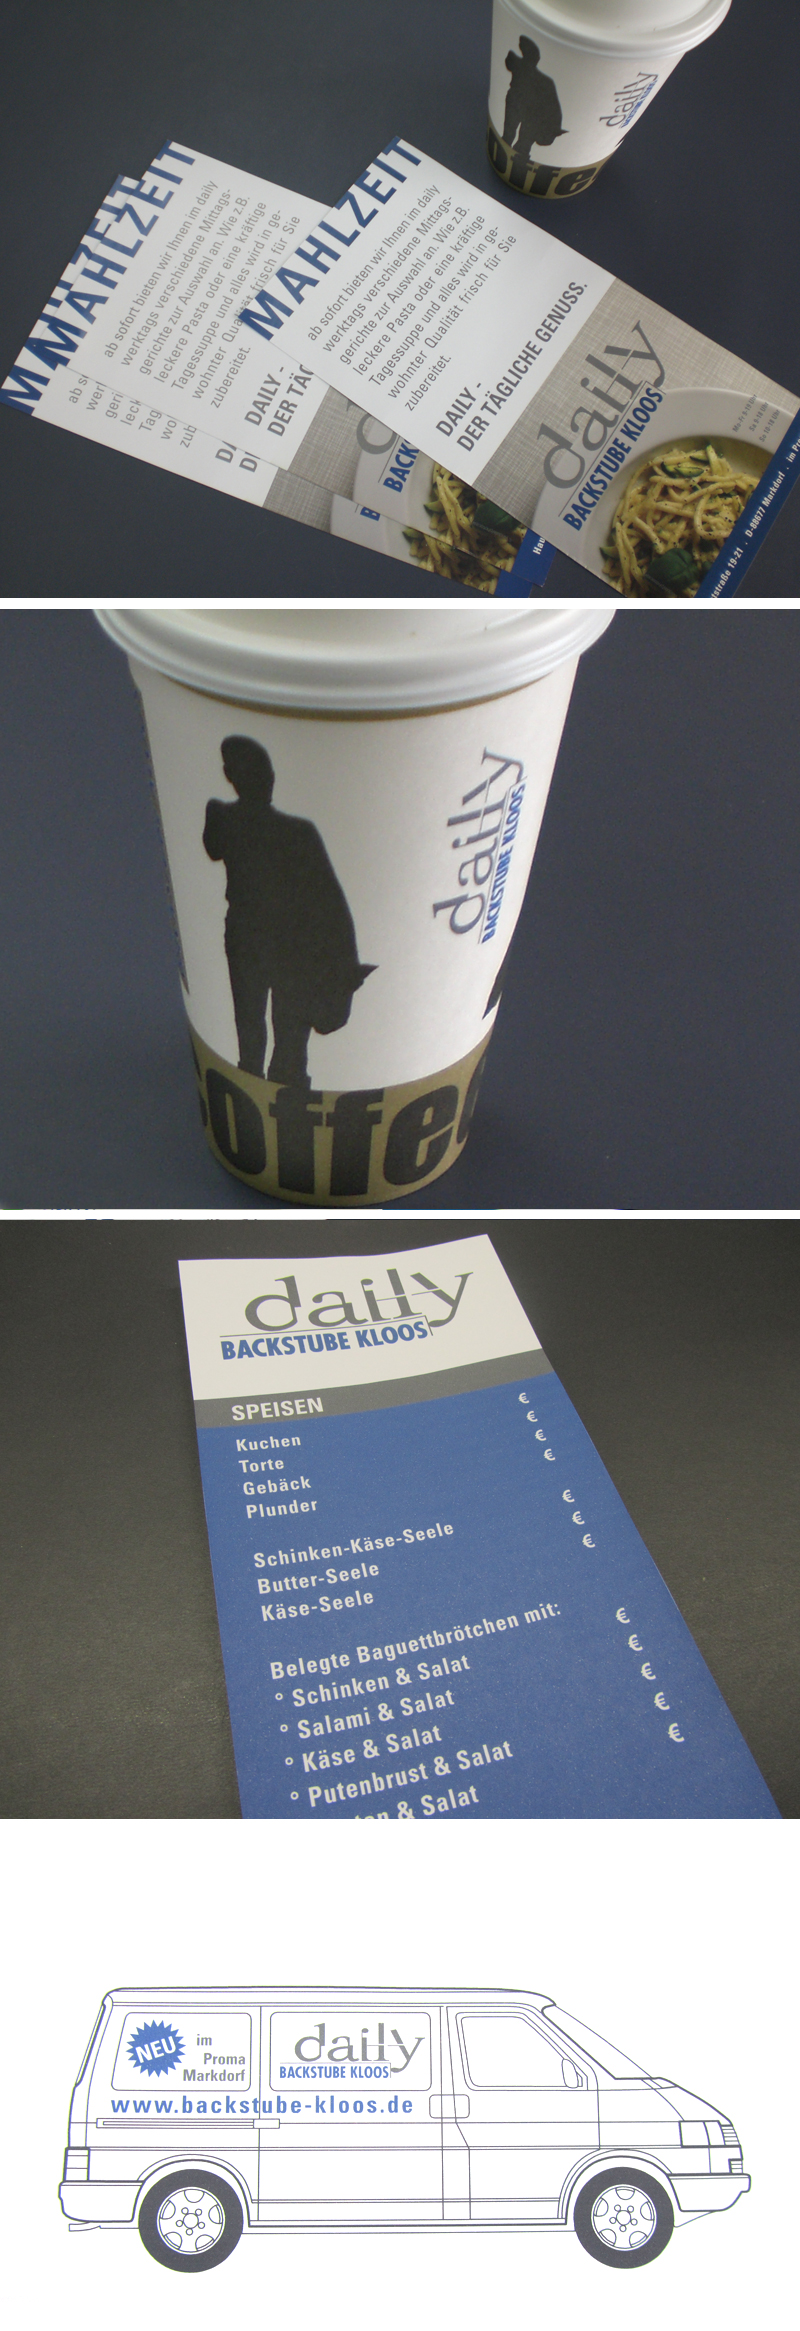 corporate-design-backstube-kloos-daily